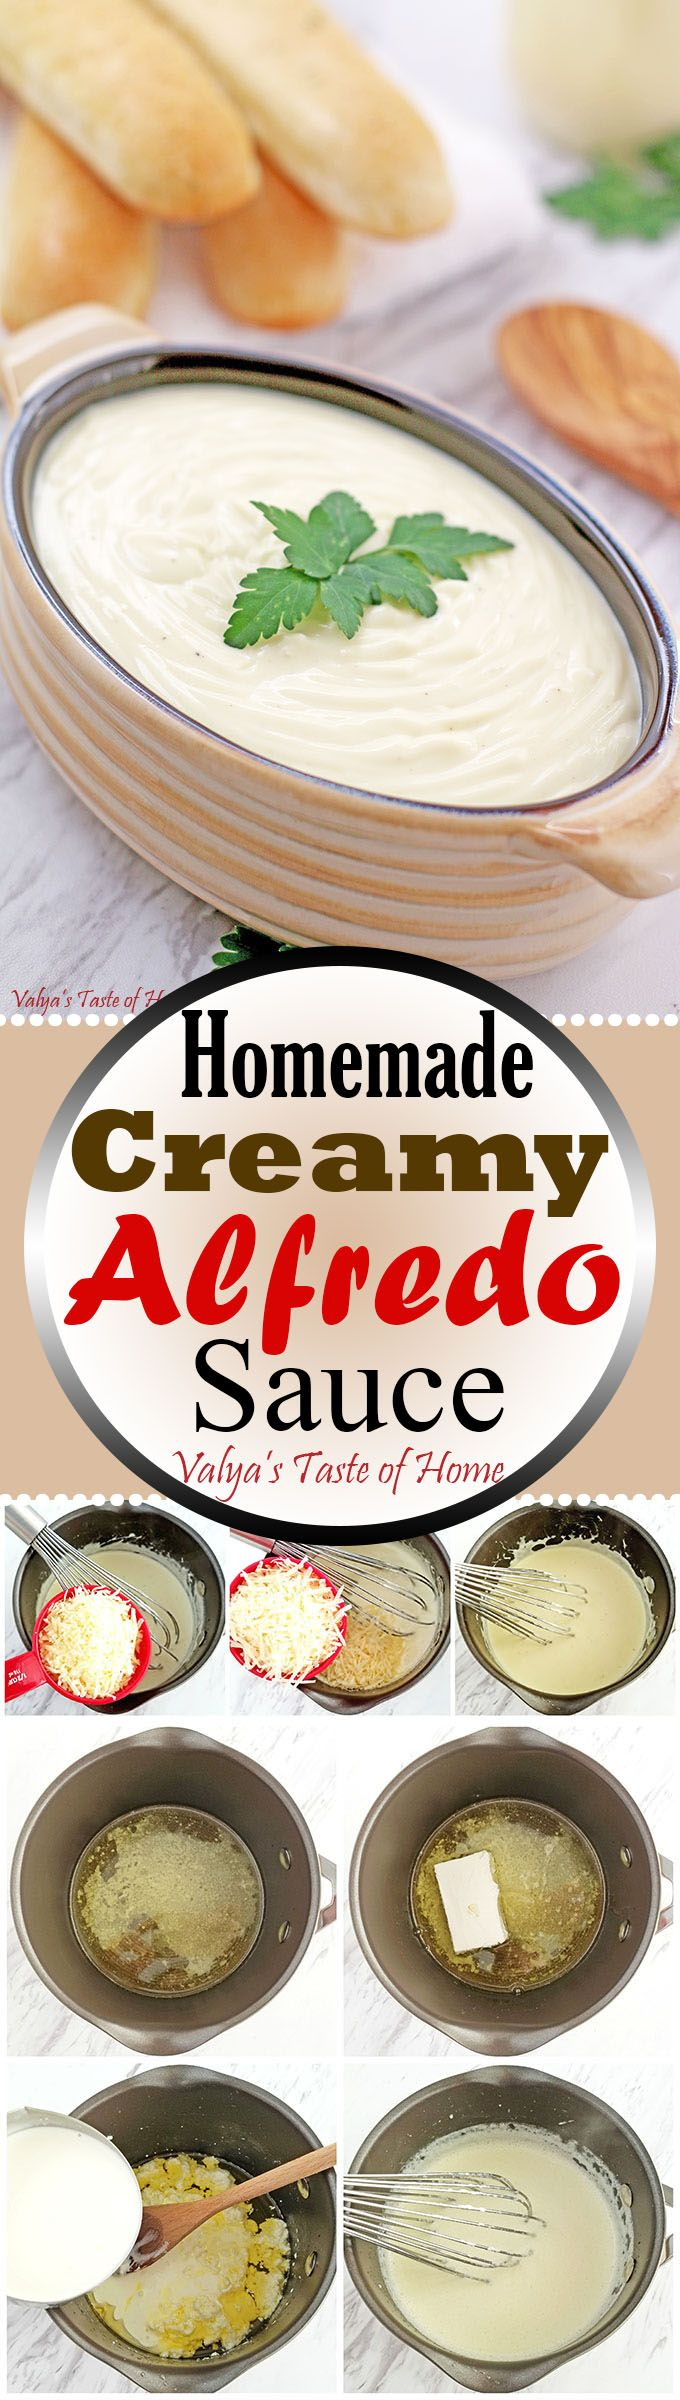 The sauce is very rich, creamy, and full of flavor. If you are an Alfredo fan, you should definitely be making this at home. It is so rich and tasty, you're gonna plotz! Serve warm as dipping or pour over pasta.